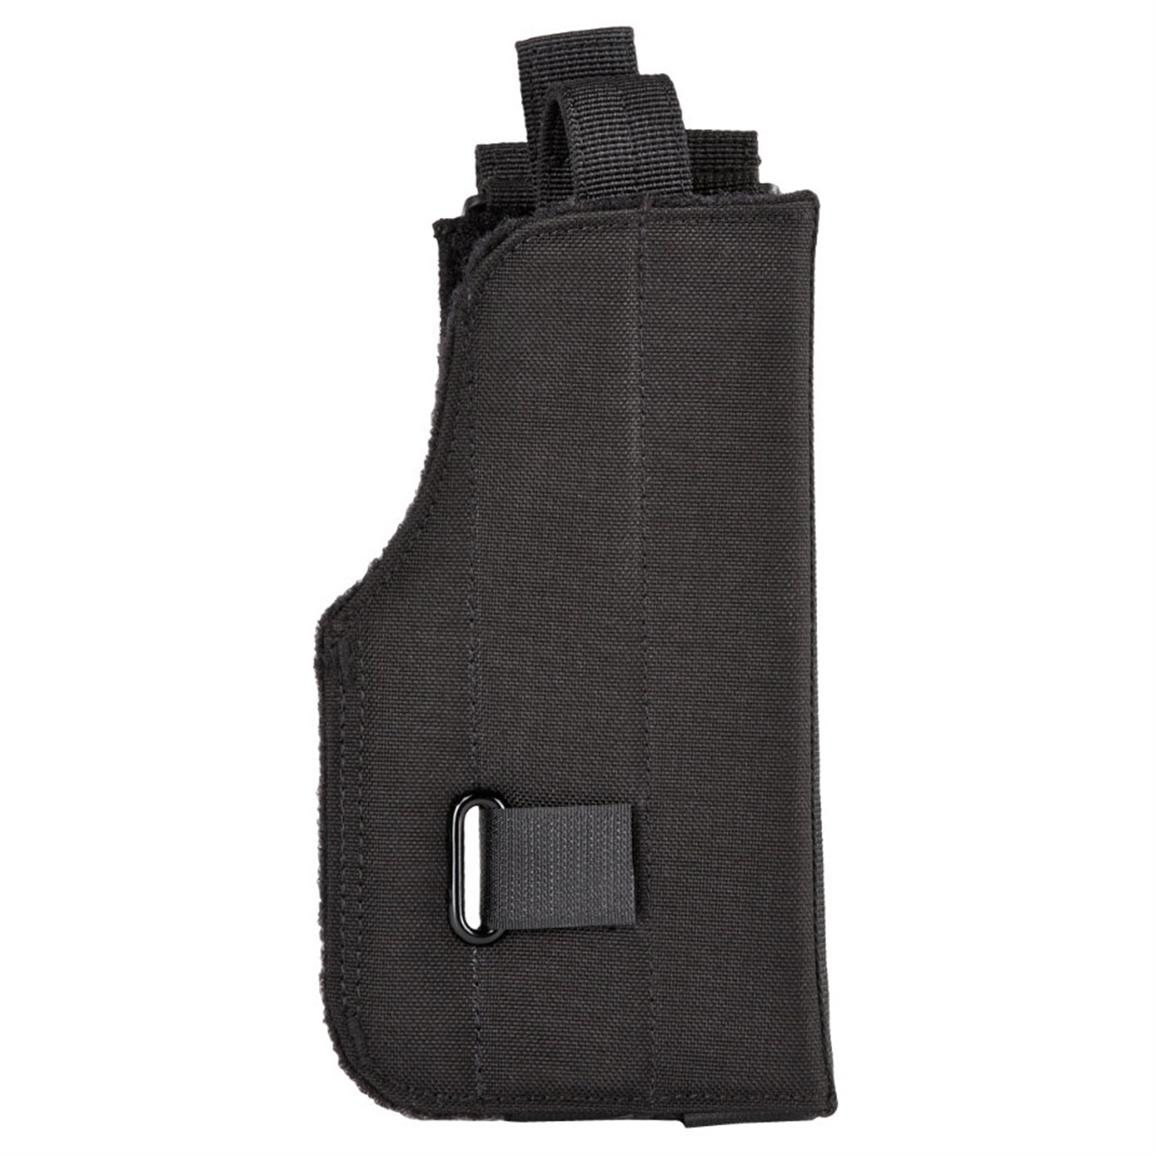 5.11 Tactical® LBE Holster